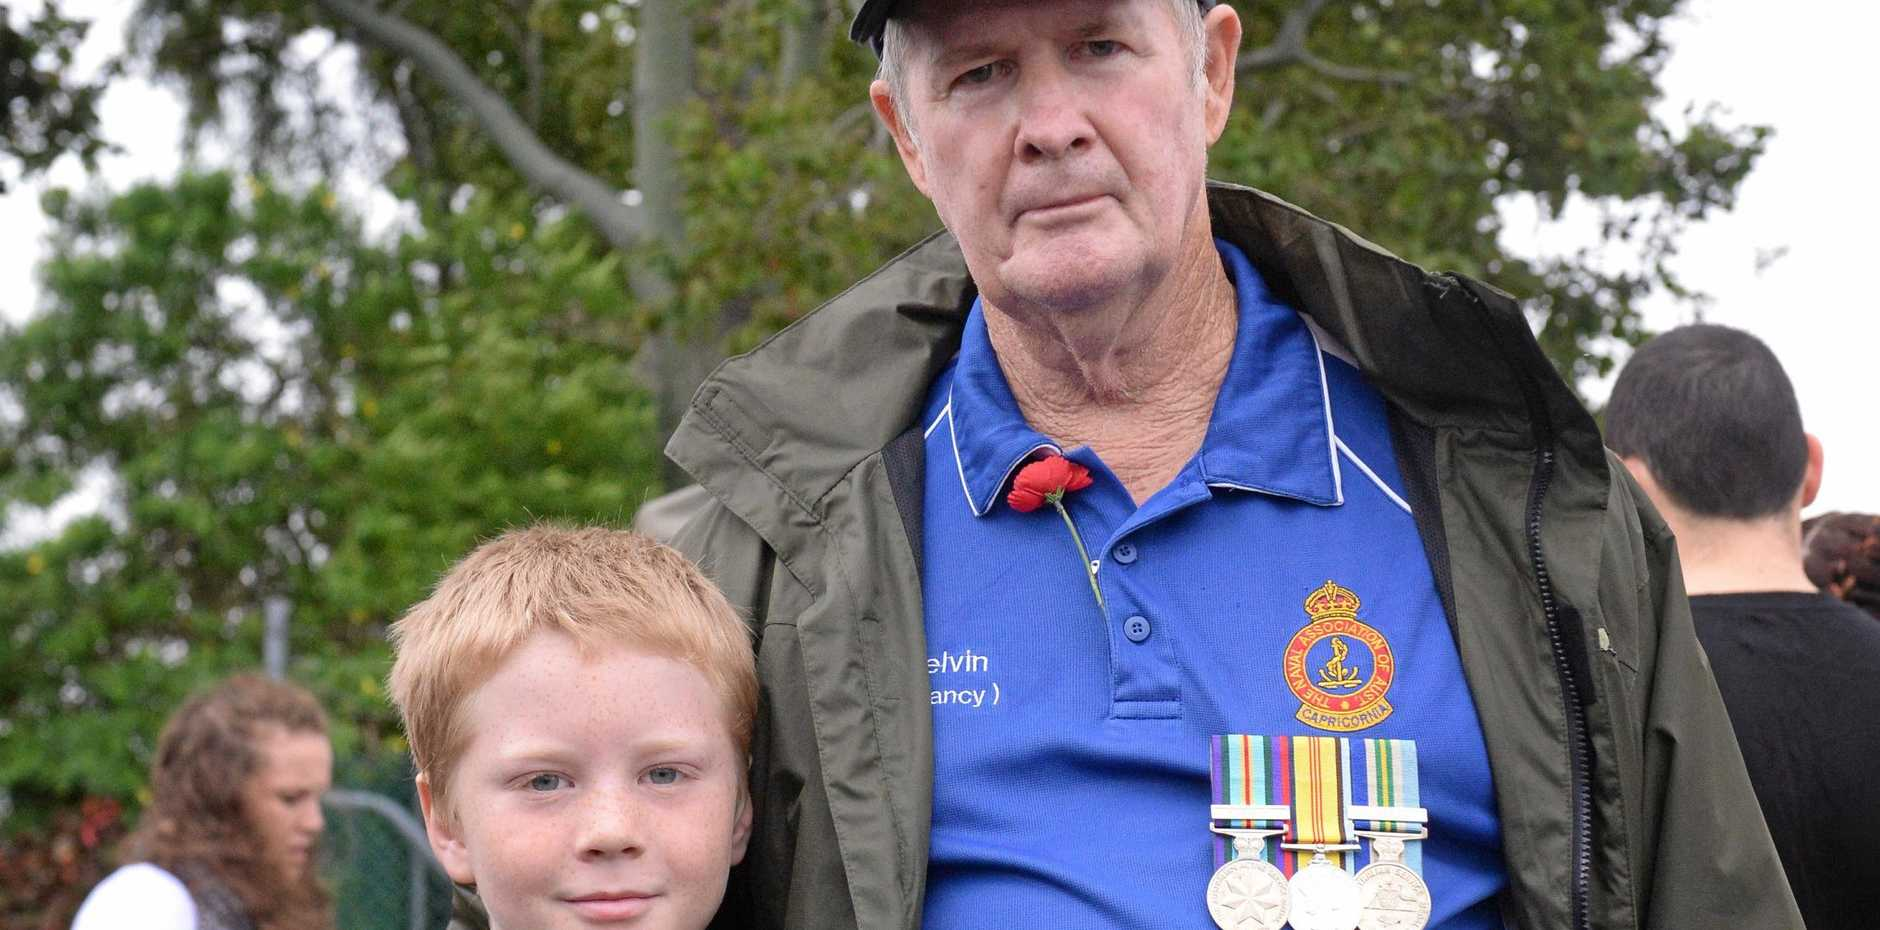 Parker and Kelvin Carolan at the Rockhampton Anzac Day parade.